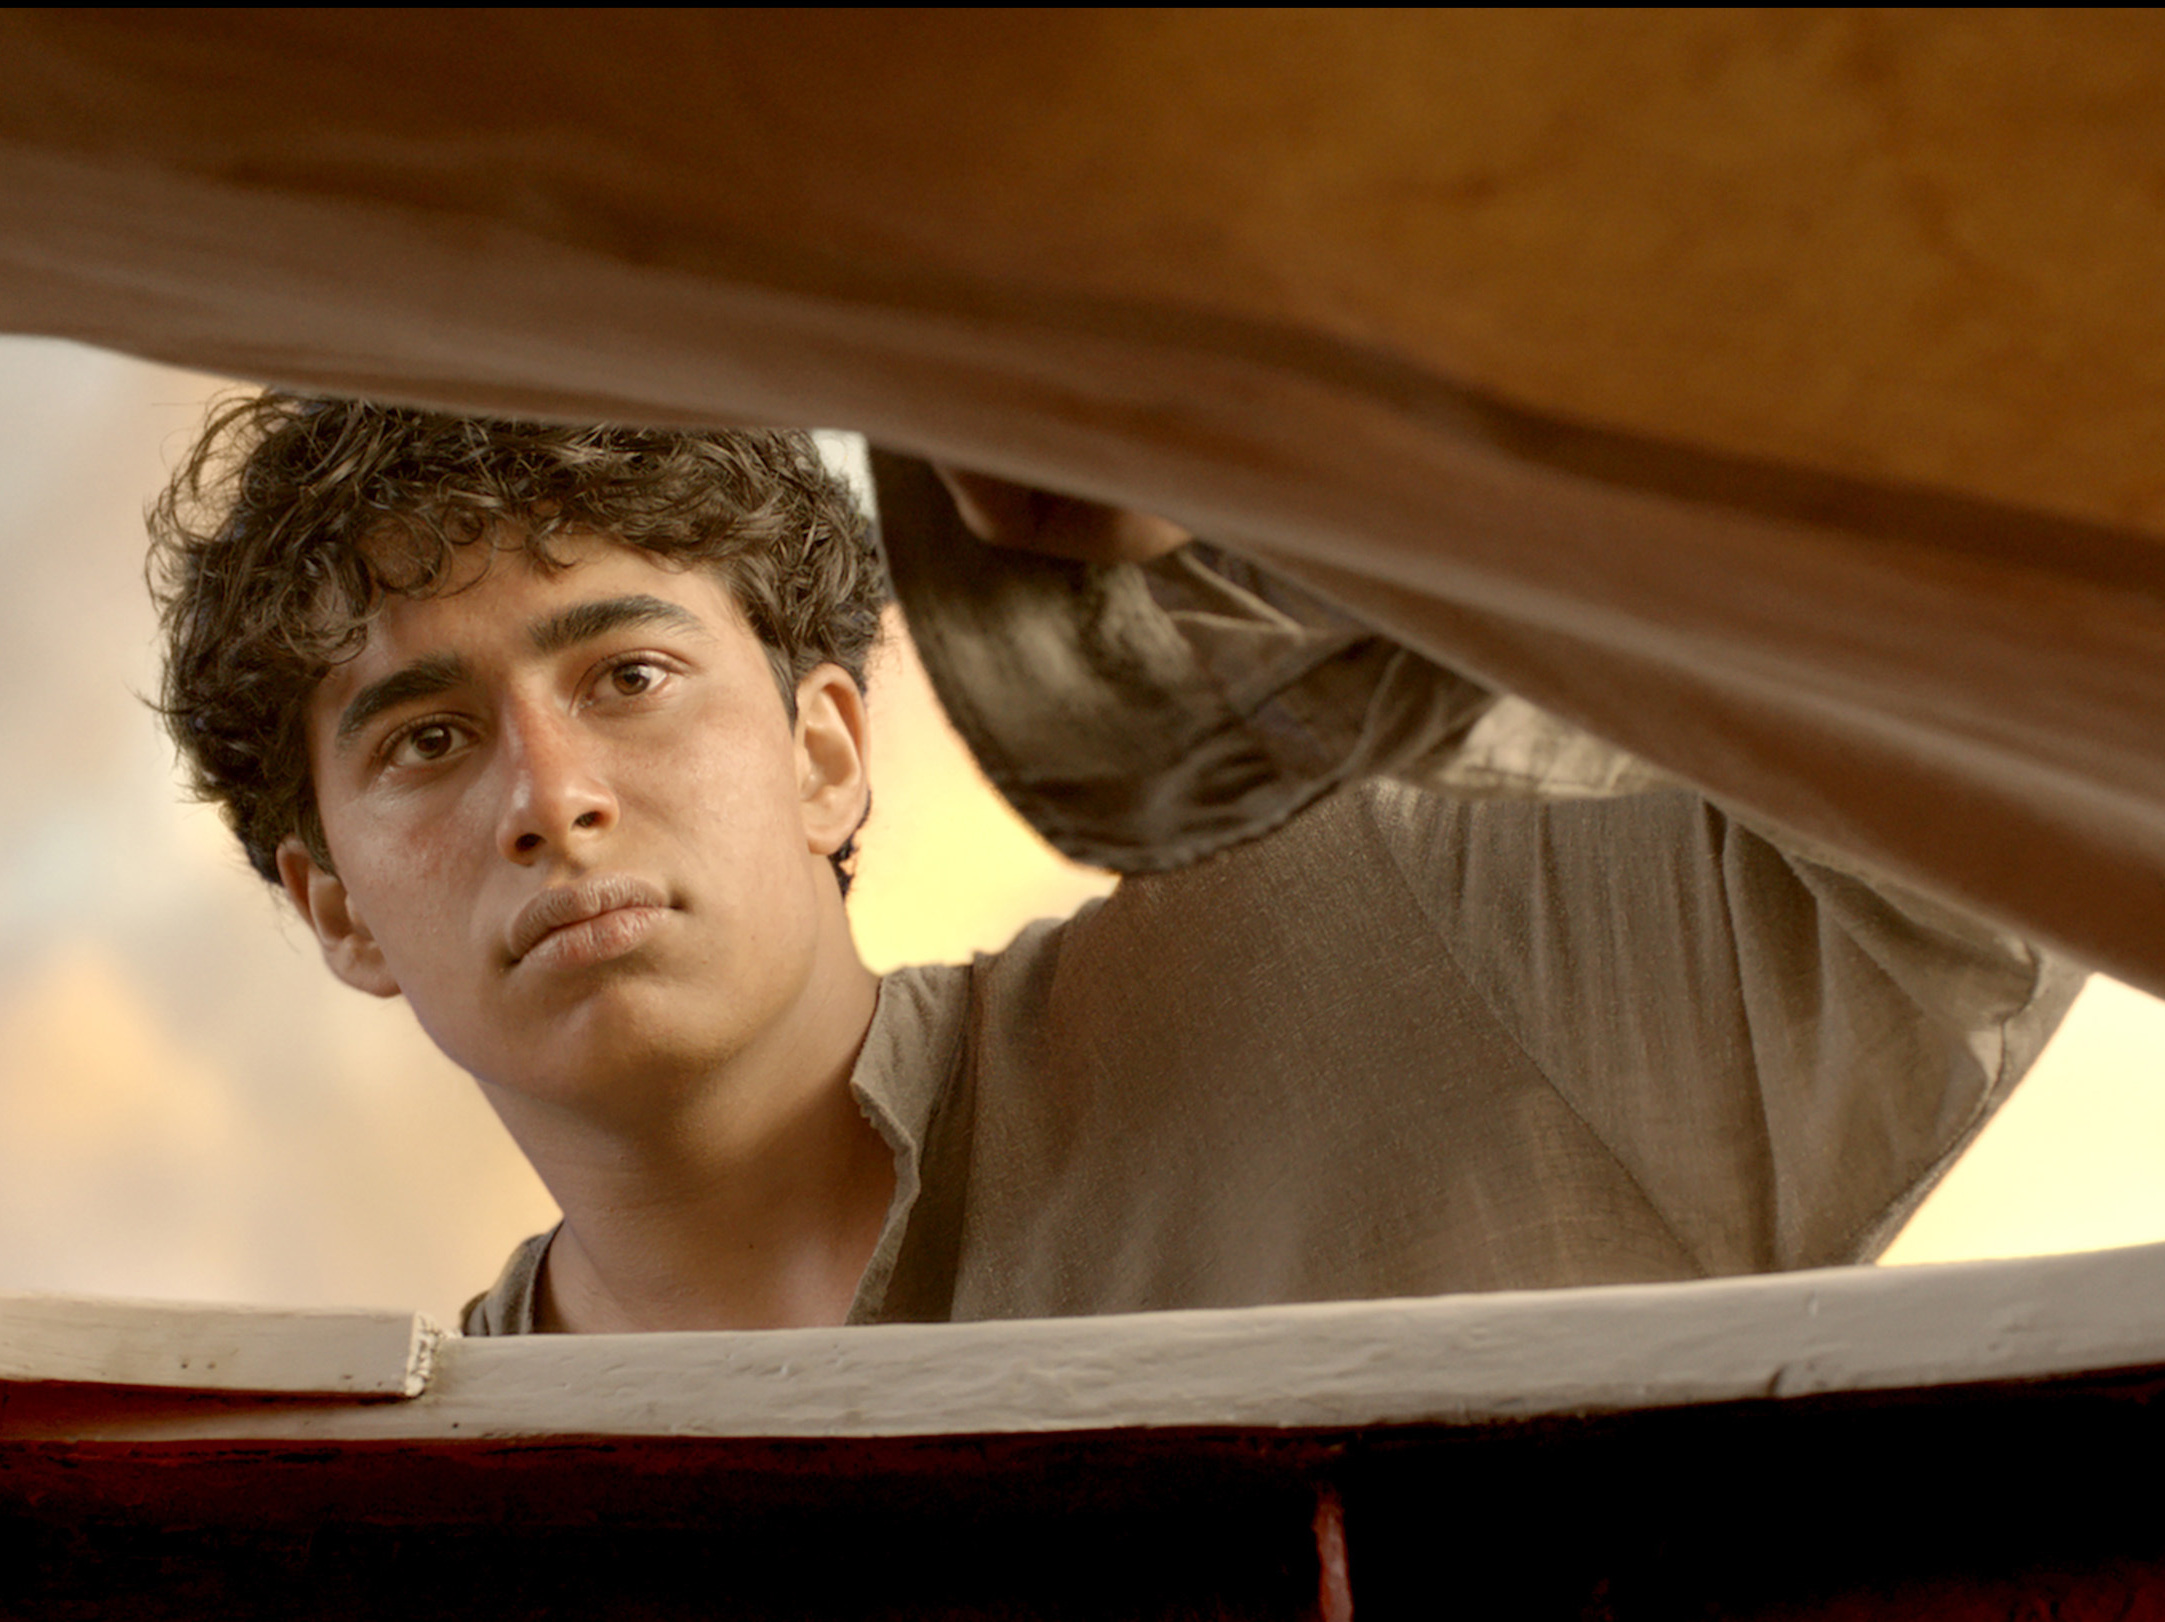 'Life Of Pi' Life-Changing For Young Star | NCPR News